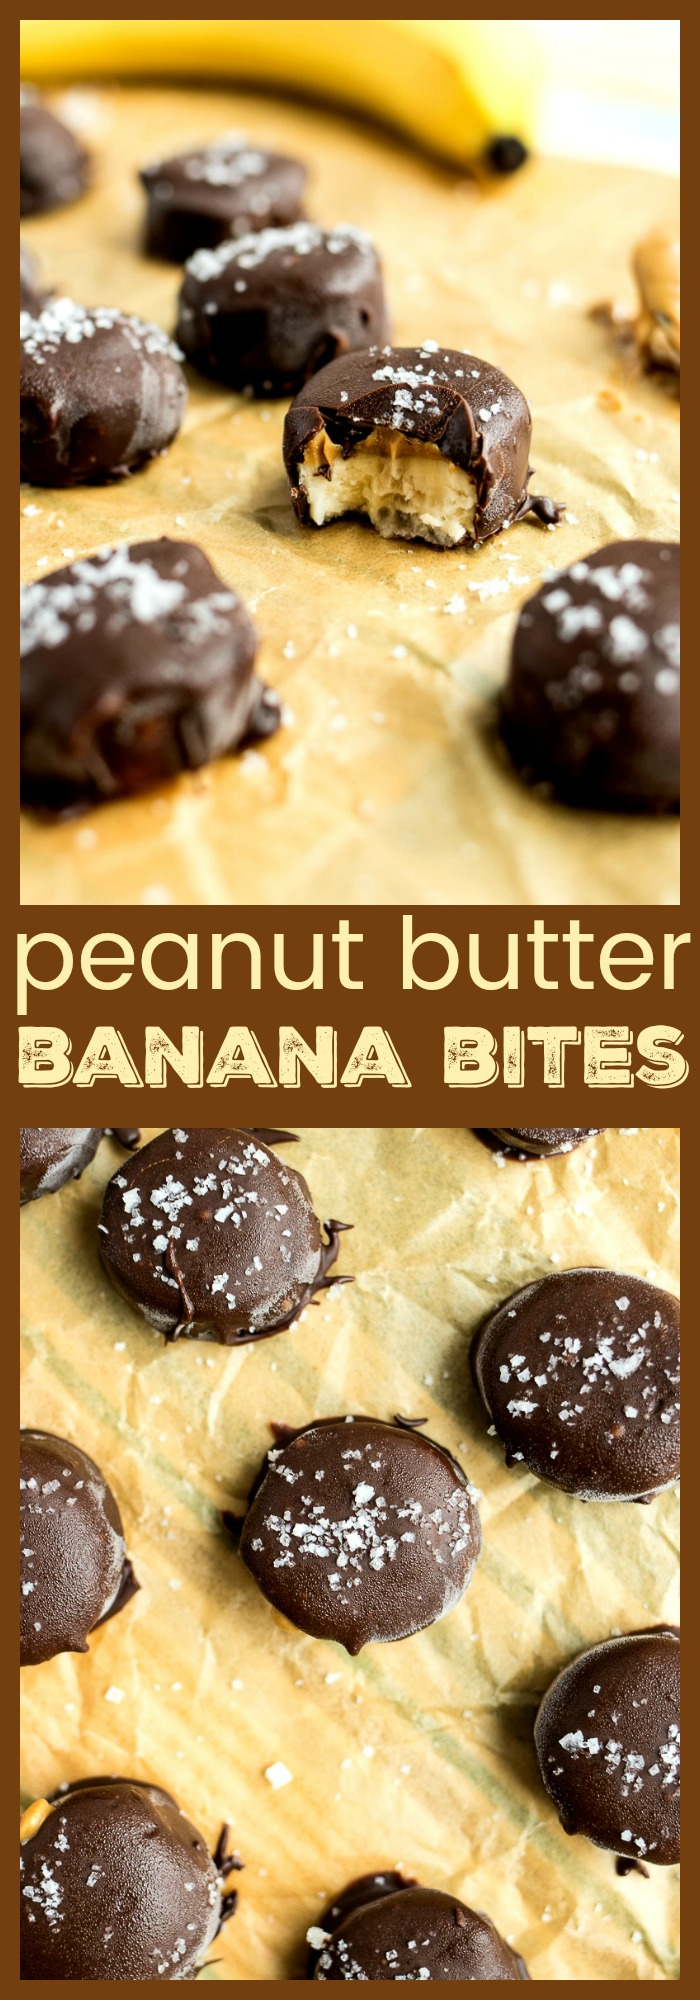 Peanut Butter Banana Bites - Sliced bananas are topped with peanut butter and dipped in chocolate to make a yummy, guilt-free treat that is great fresh or frozen!